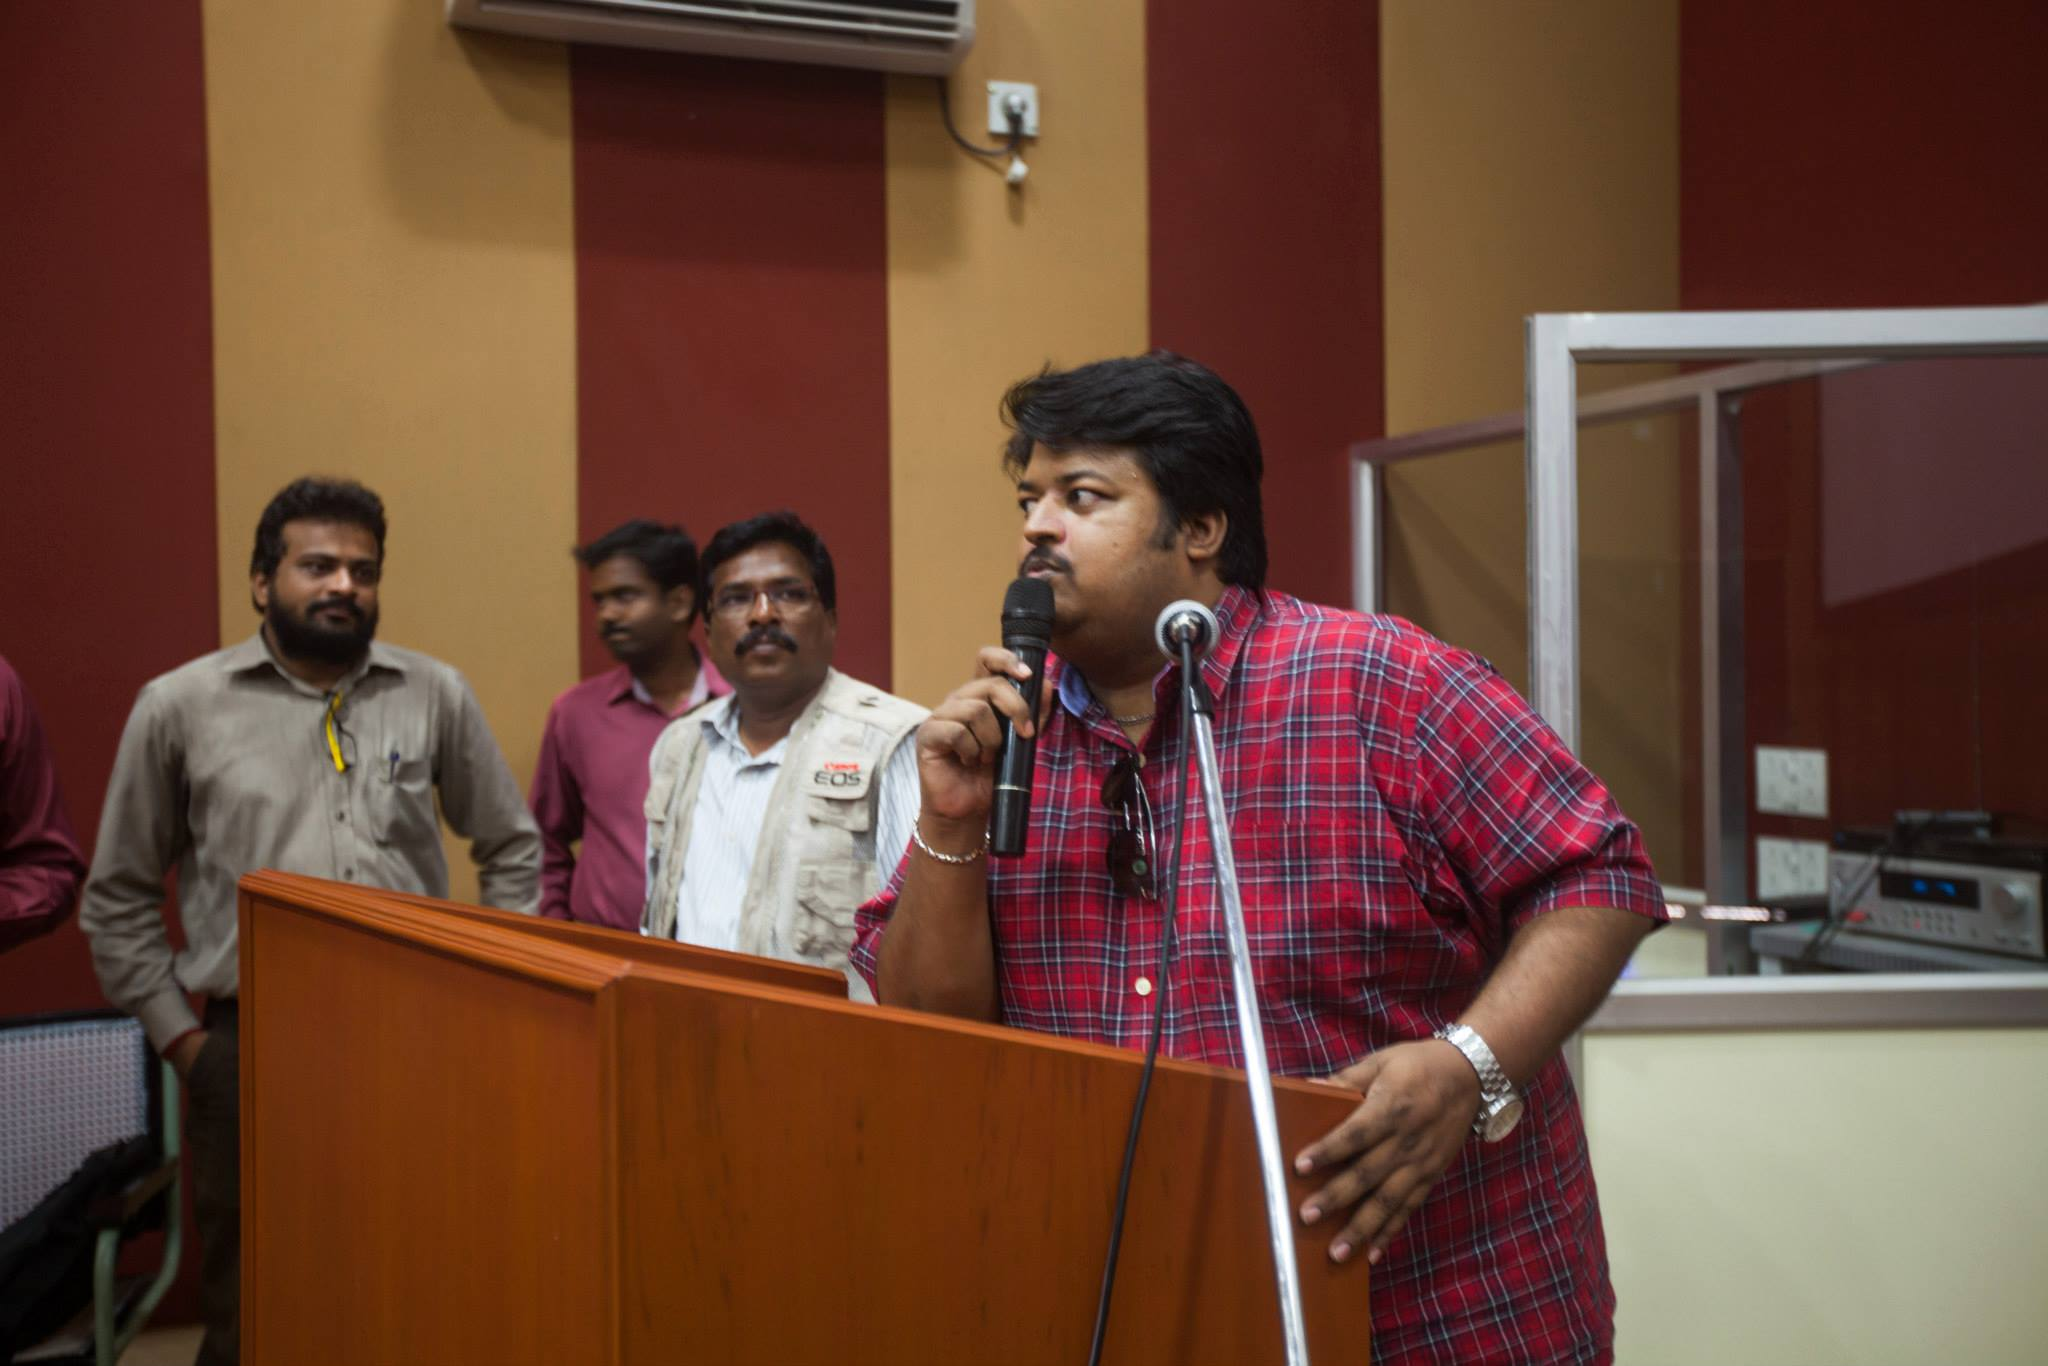 Addressing-the-Students-for-Photo-Journalism-Workshop-in-Madras-Christian-College-